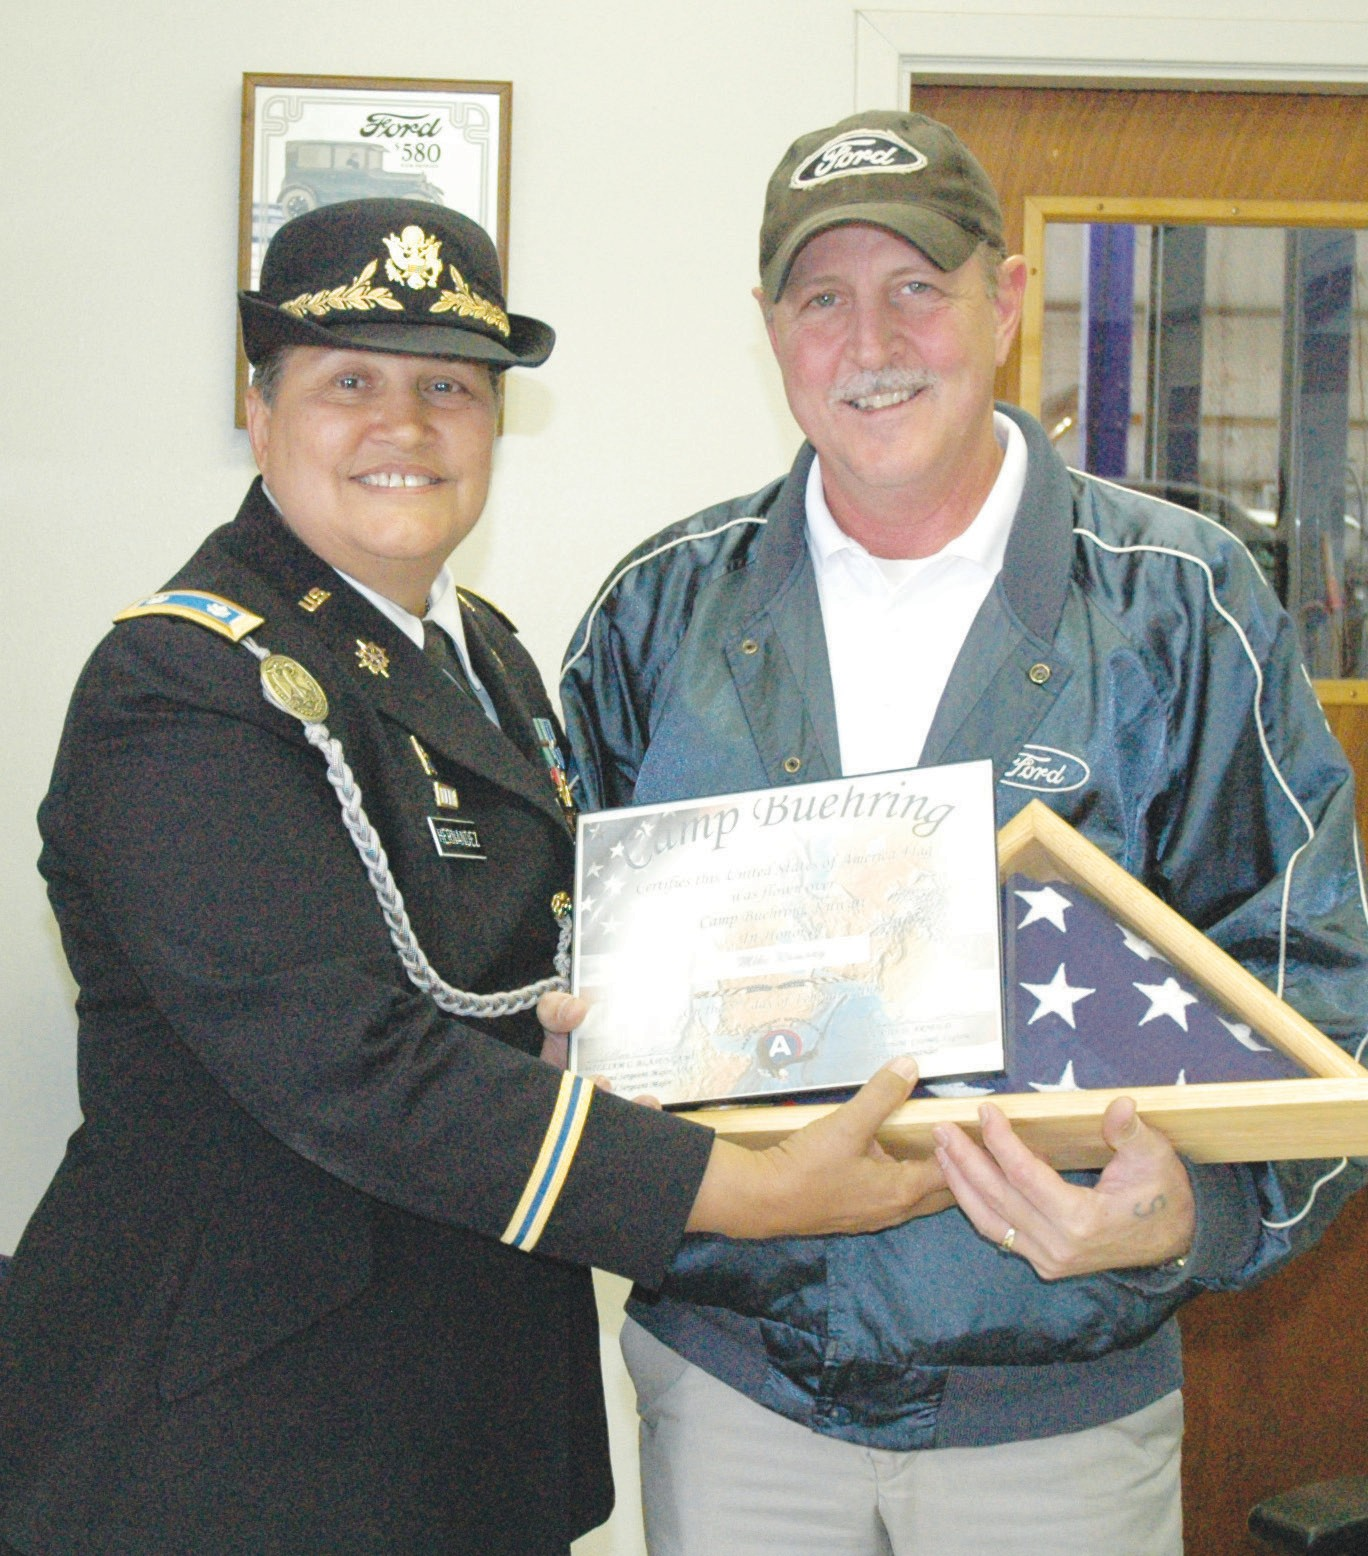 Mike Ramsey, service manager at Kinsel Ford in Pleasanton, receives a flag from LTC Retired U. S. Army Veronica R. Hernandez. It was flown over Camp Buehring, Kuwait during her 2009 tour.